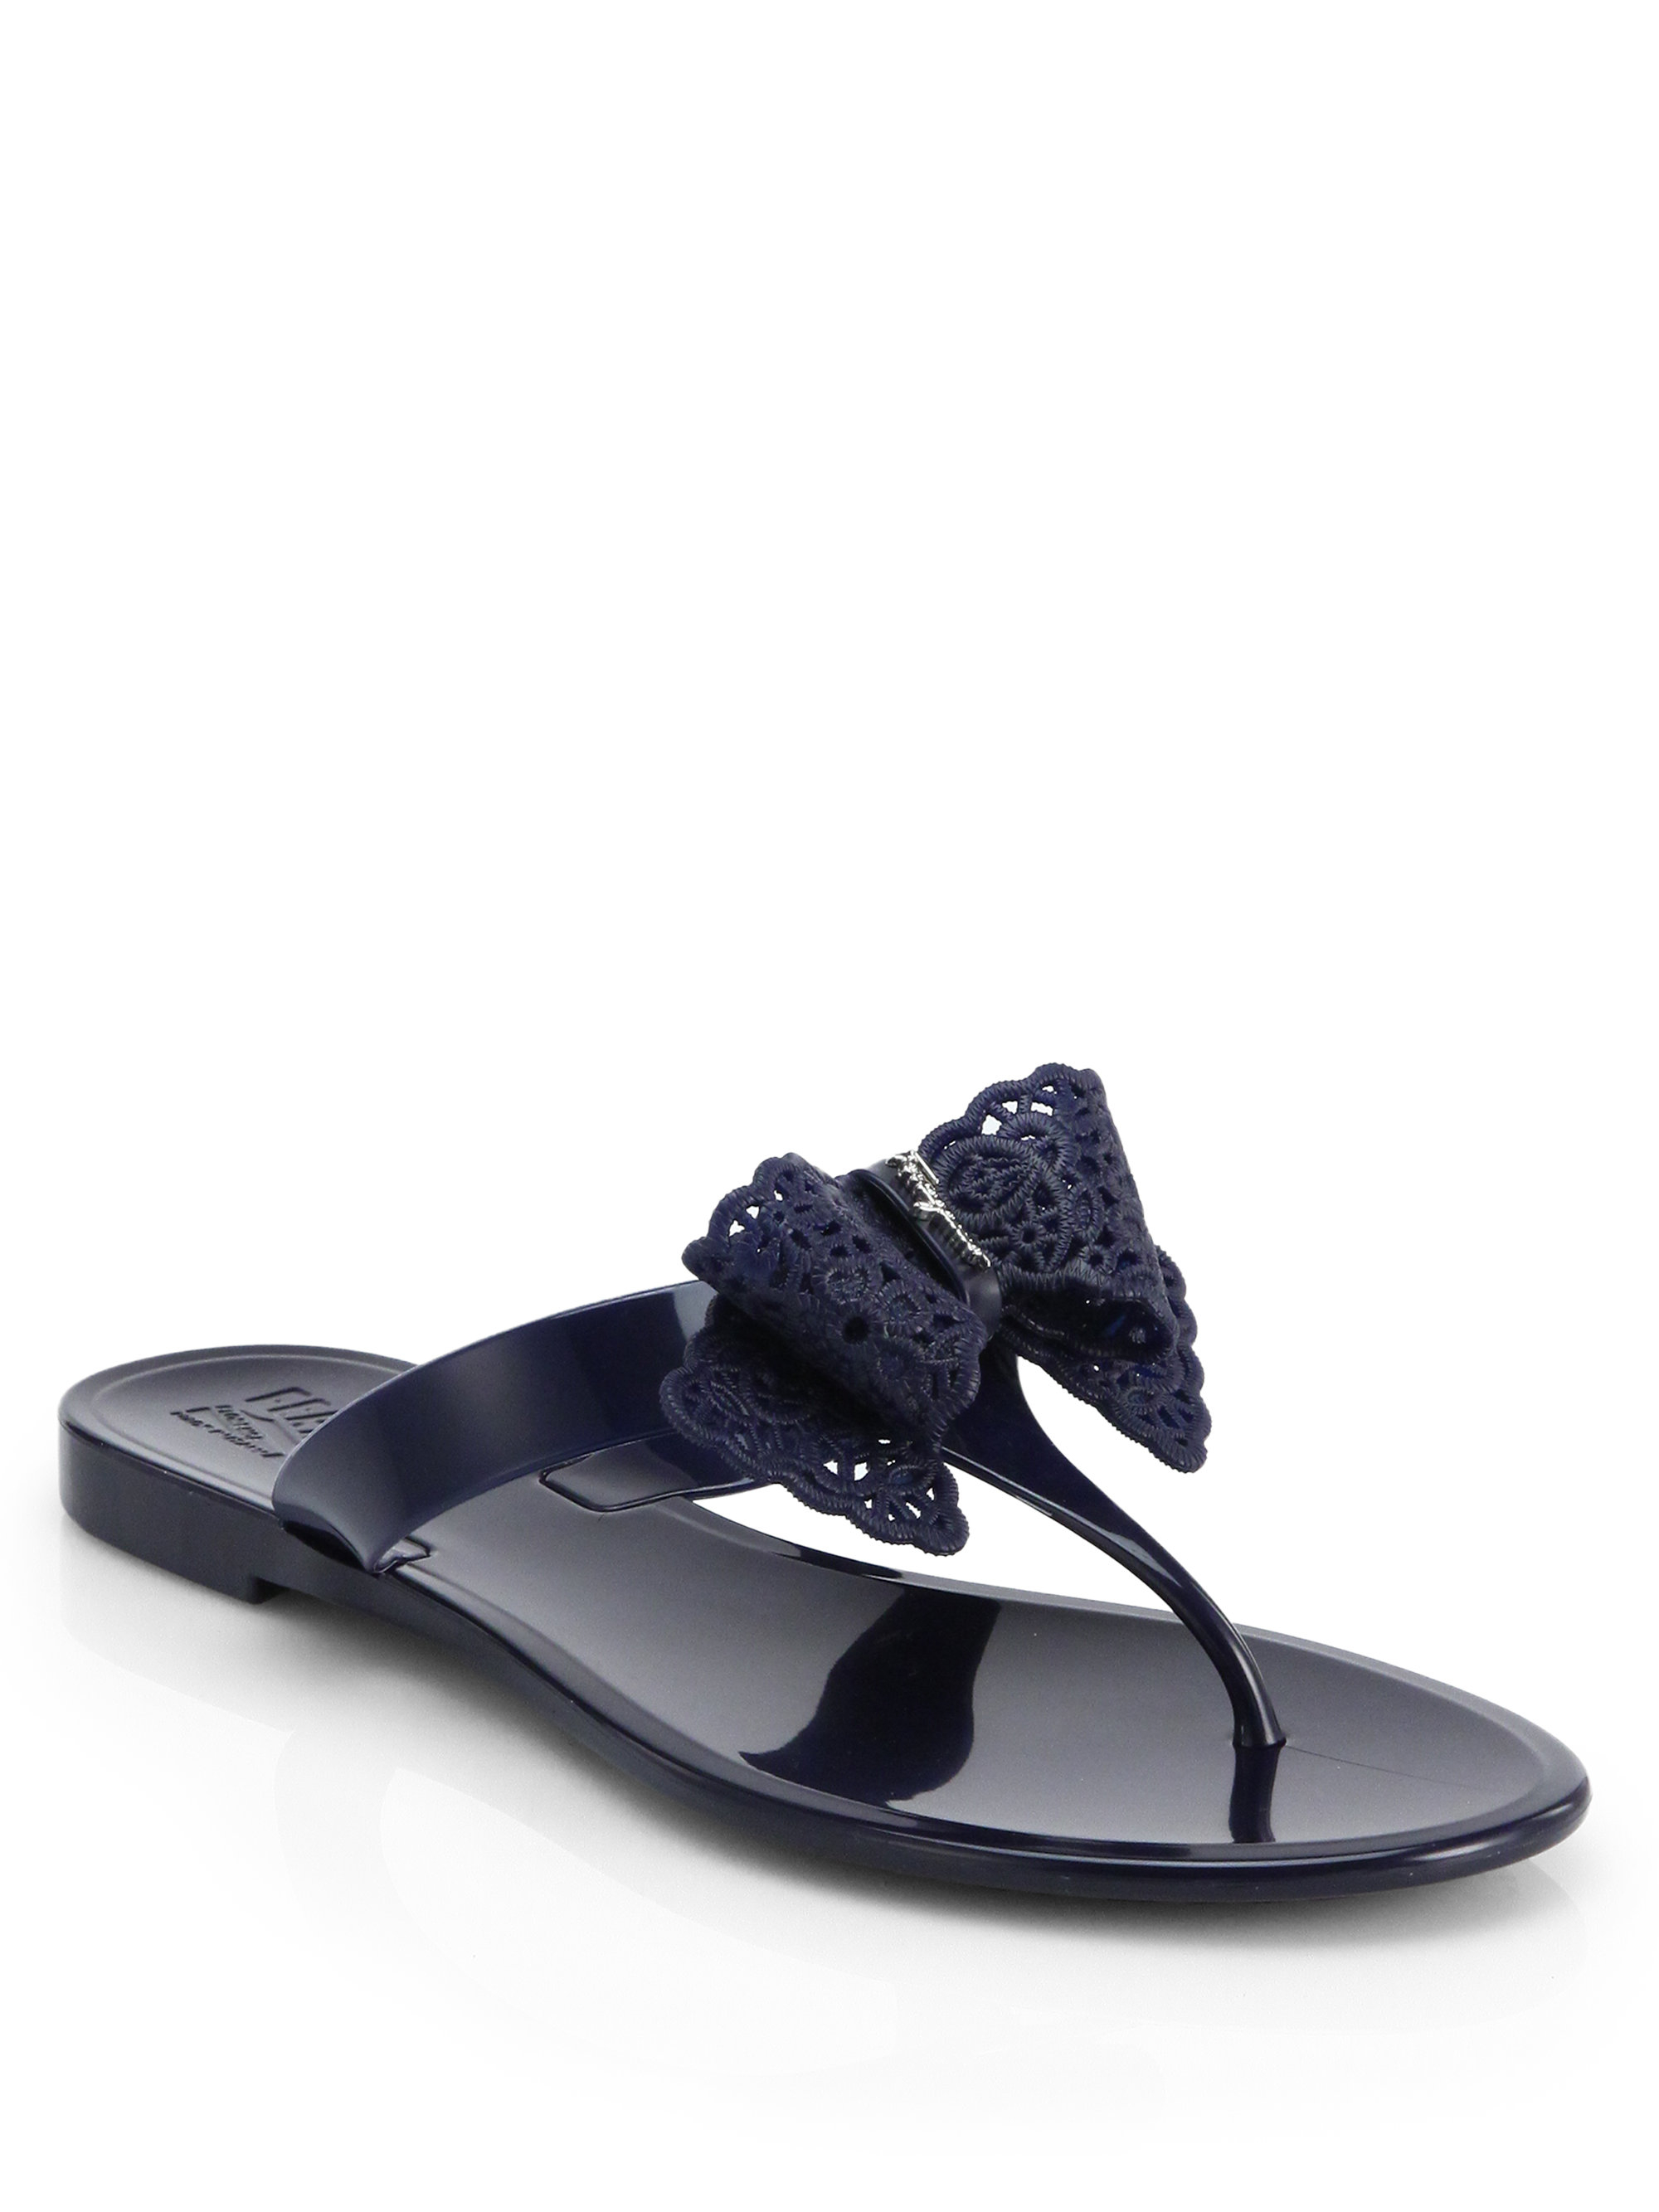 Ferragamo Pandy Bow Jelly Thong Sandals In Black Lyst